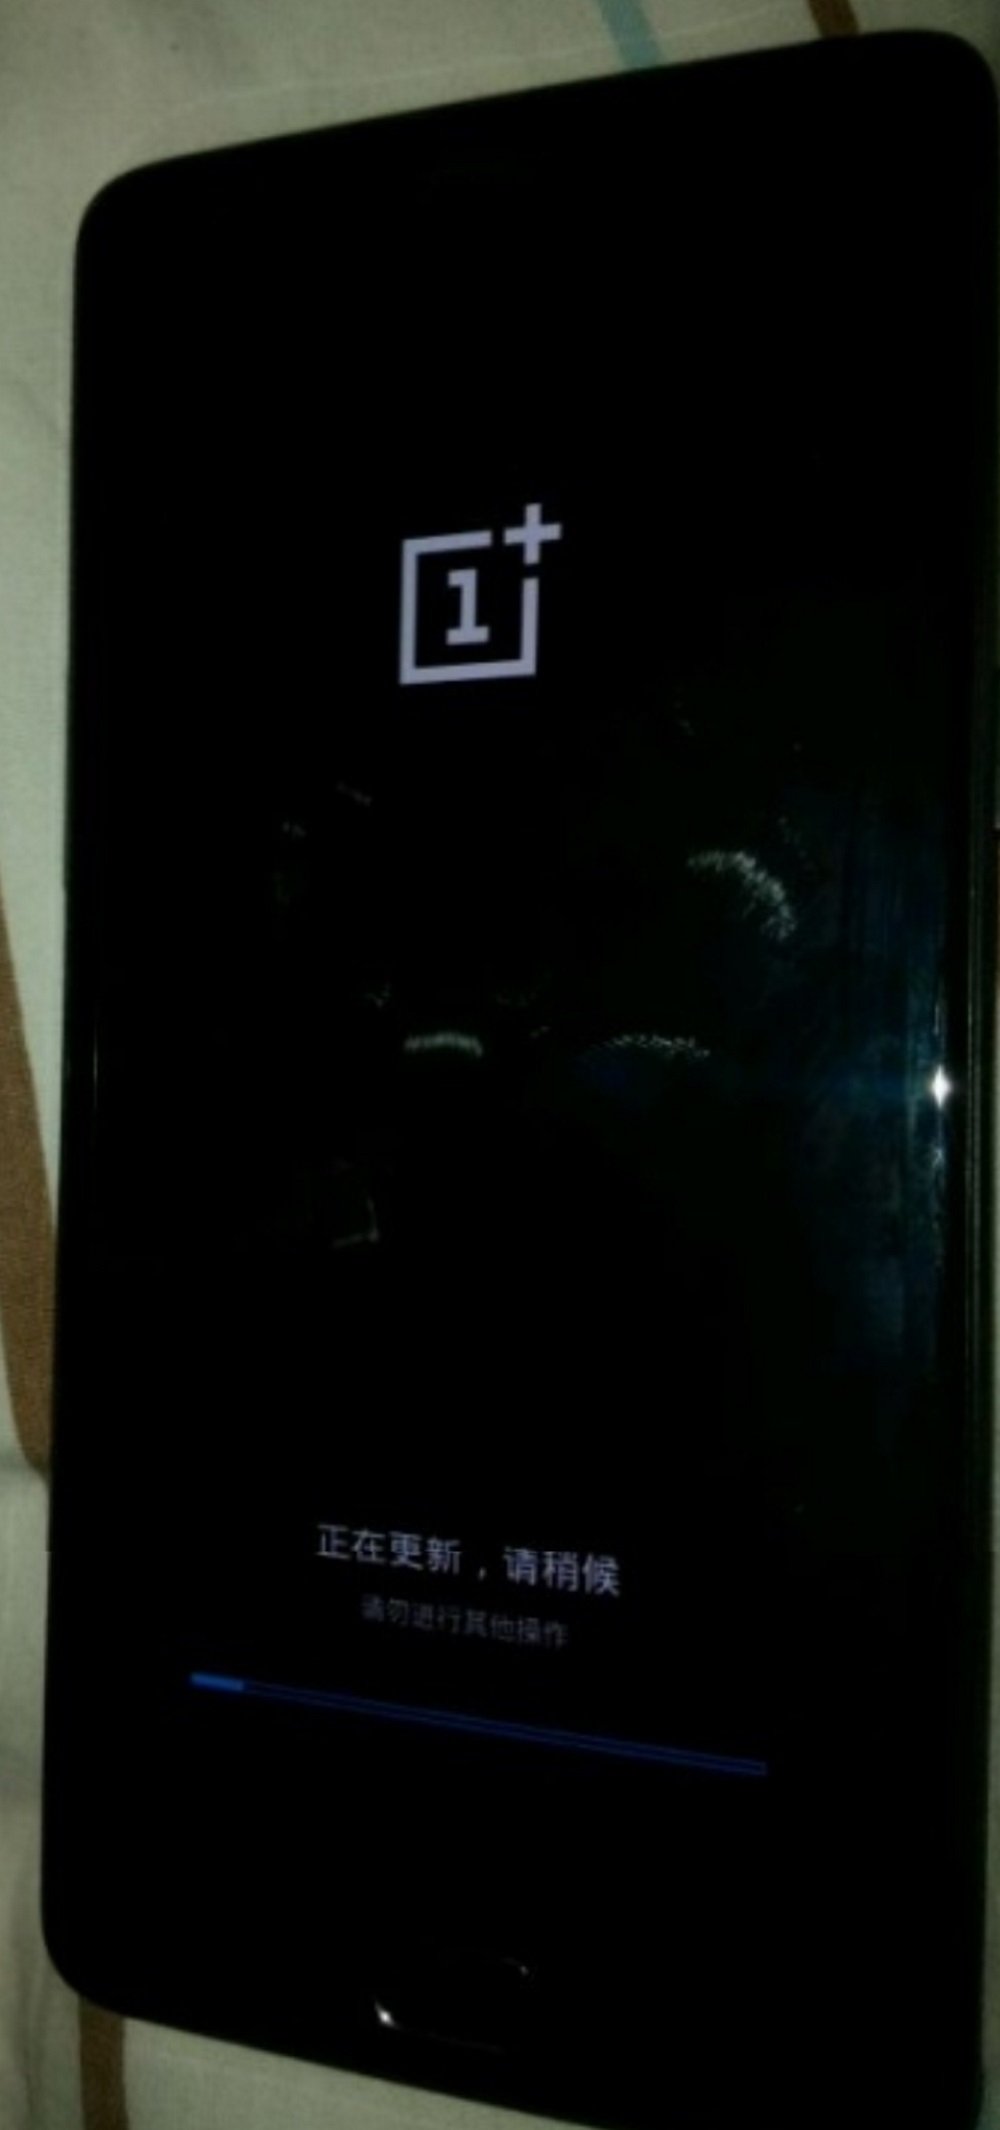 Images-allegedly-showing-off-the-OnePlus-33